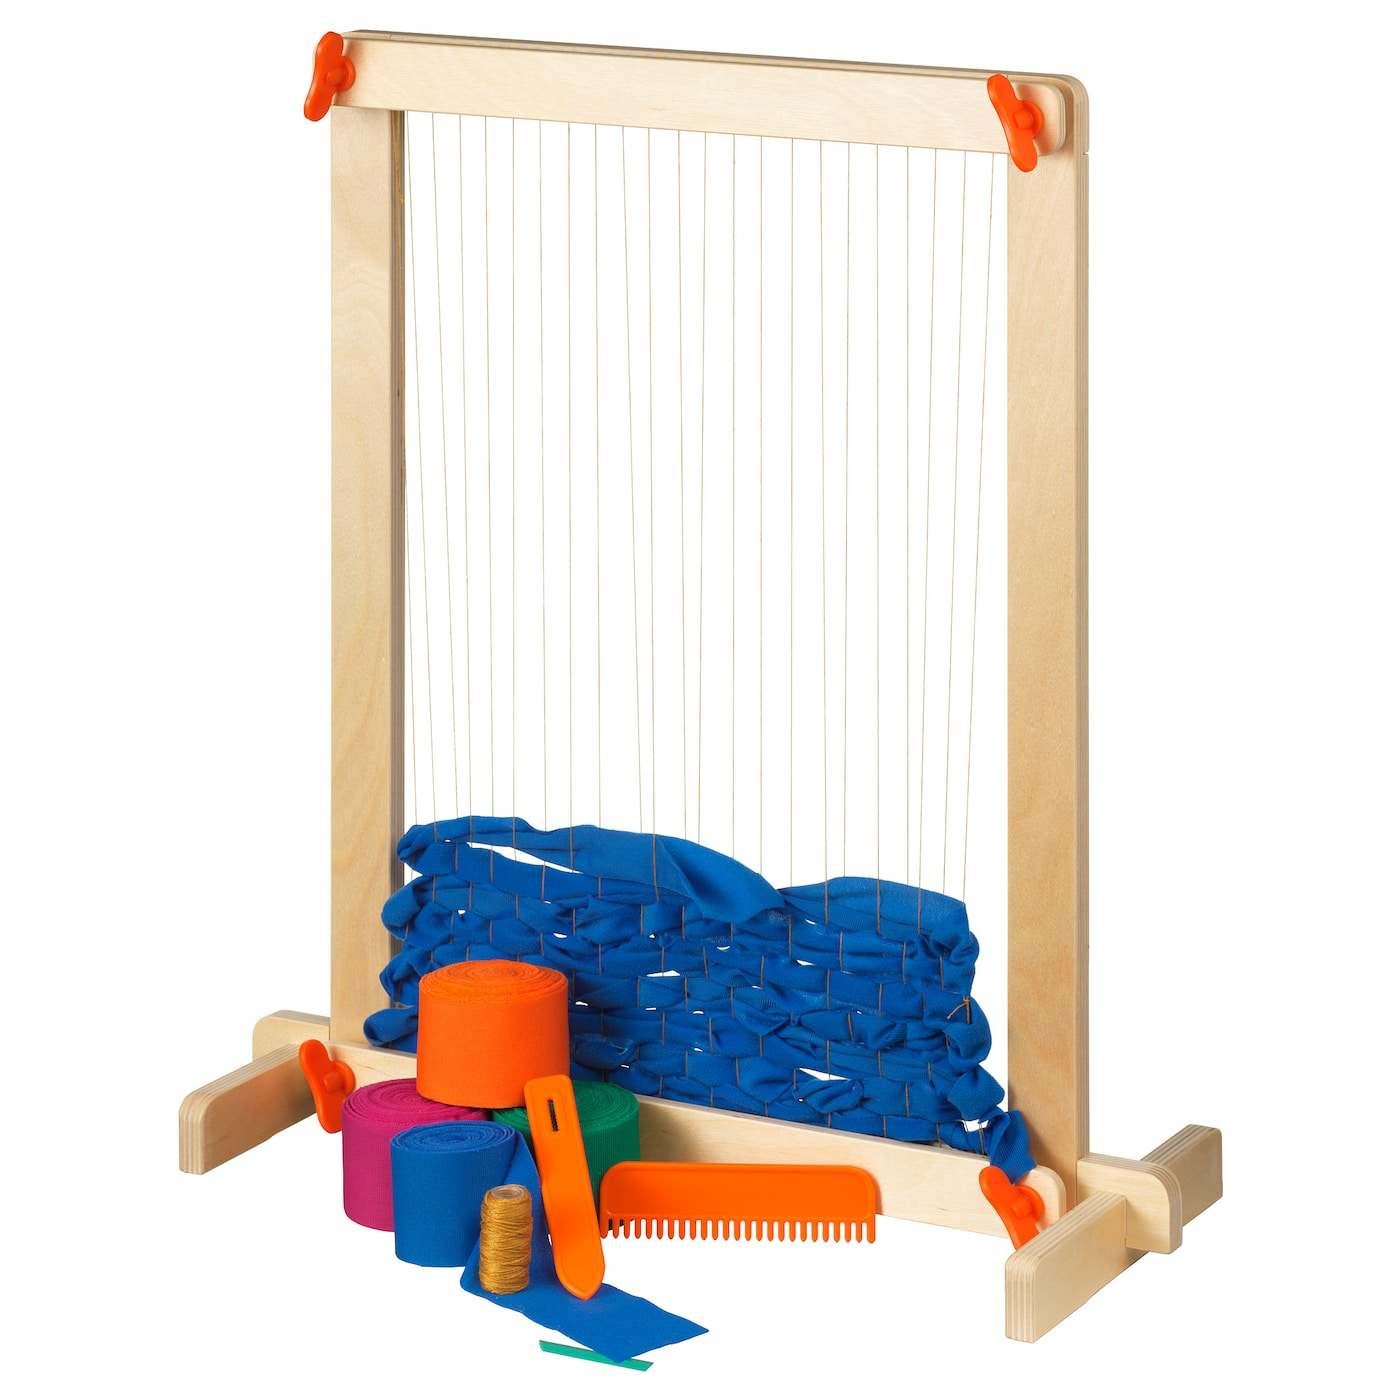 IKEA LUSTIGT 7-piece weaving loom set